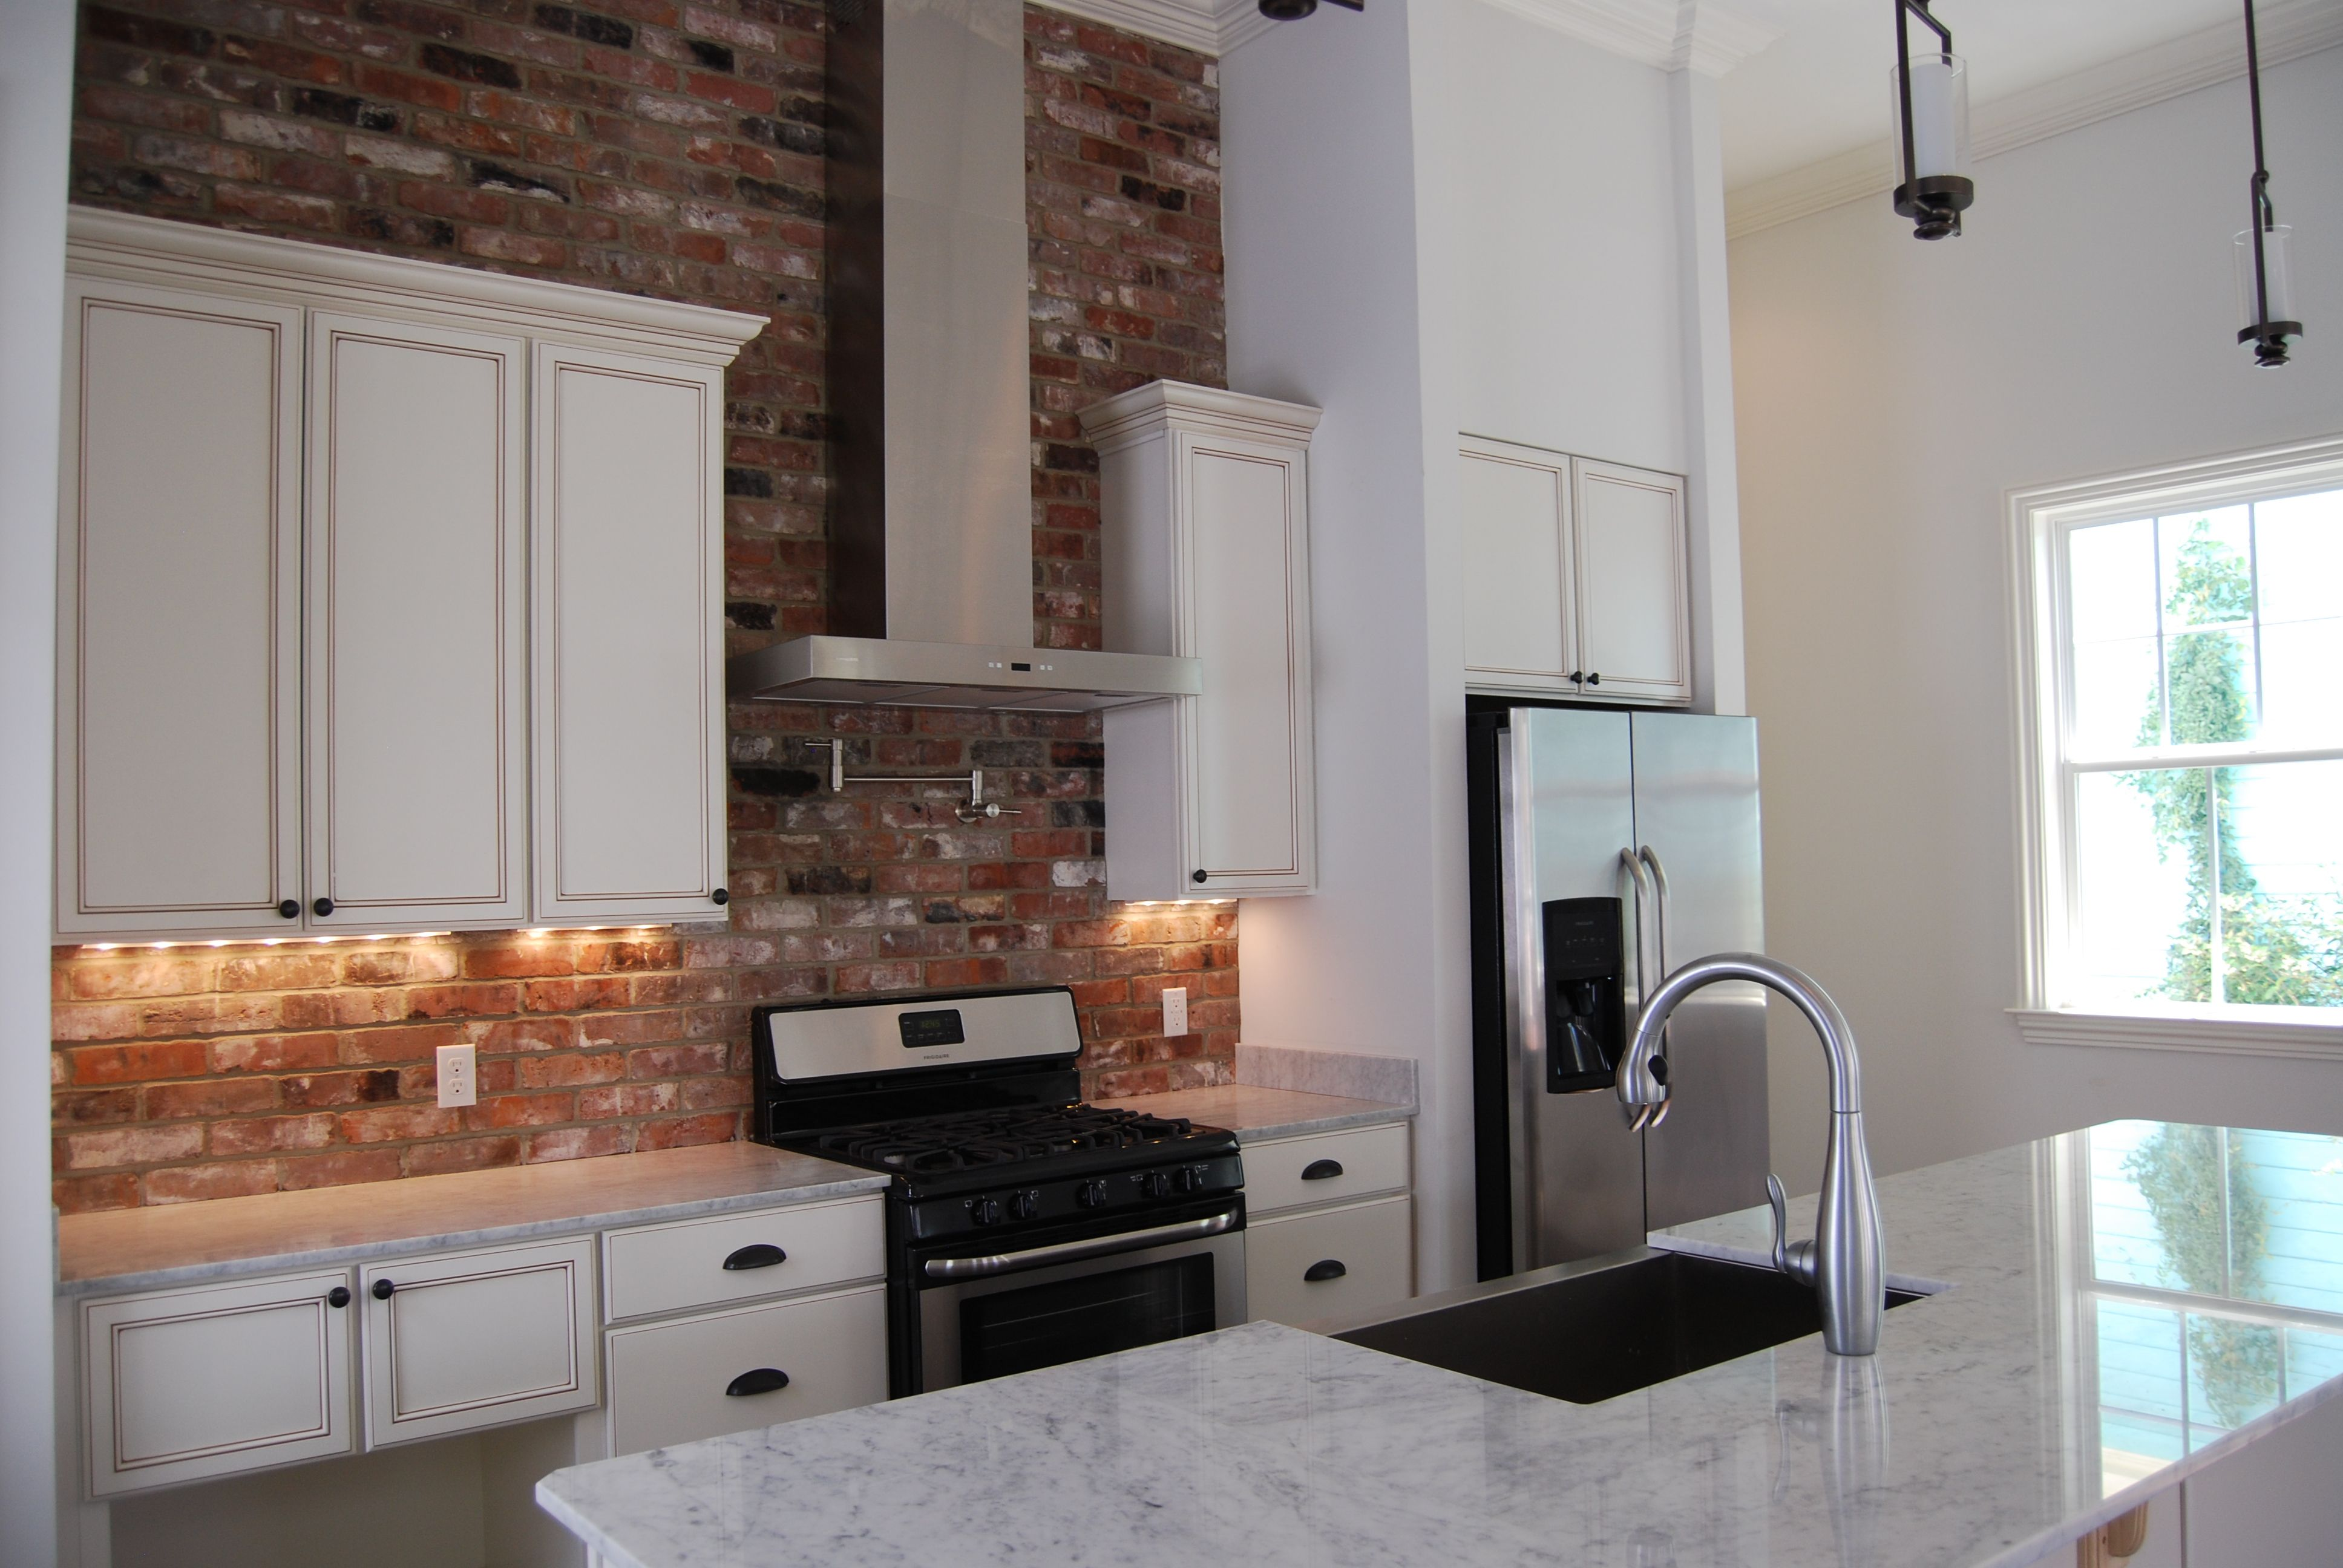 Solid Wood Cabinets With Mocha Glaze White Carrara Marble